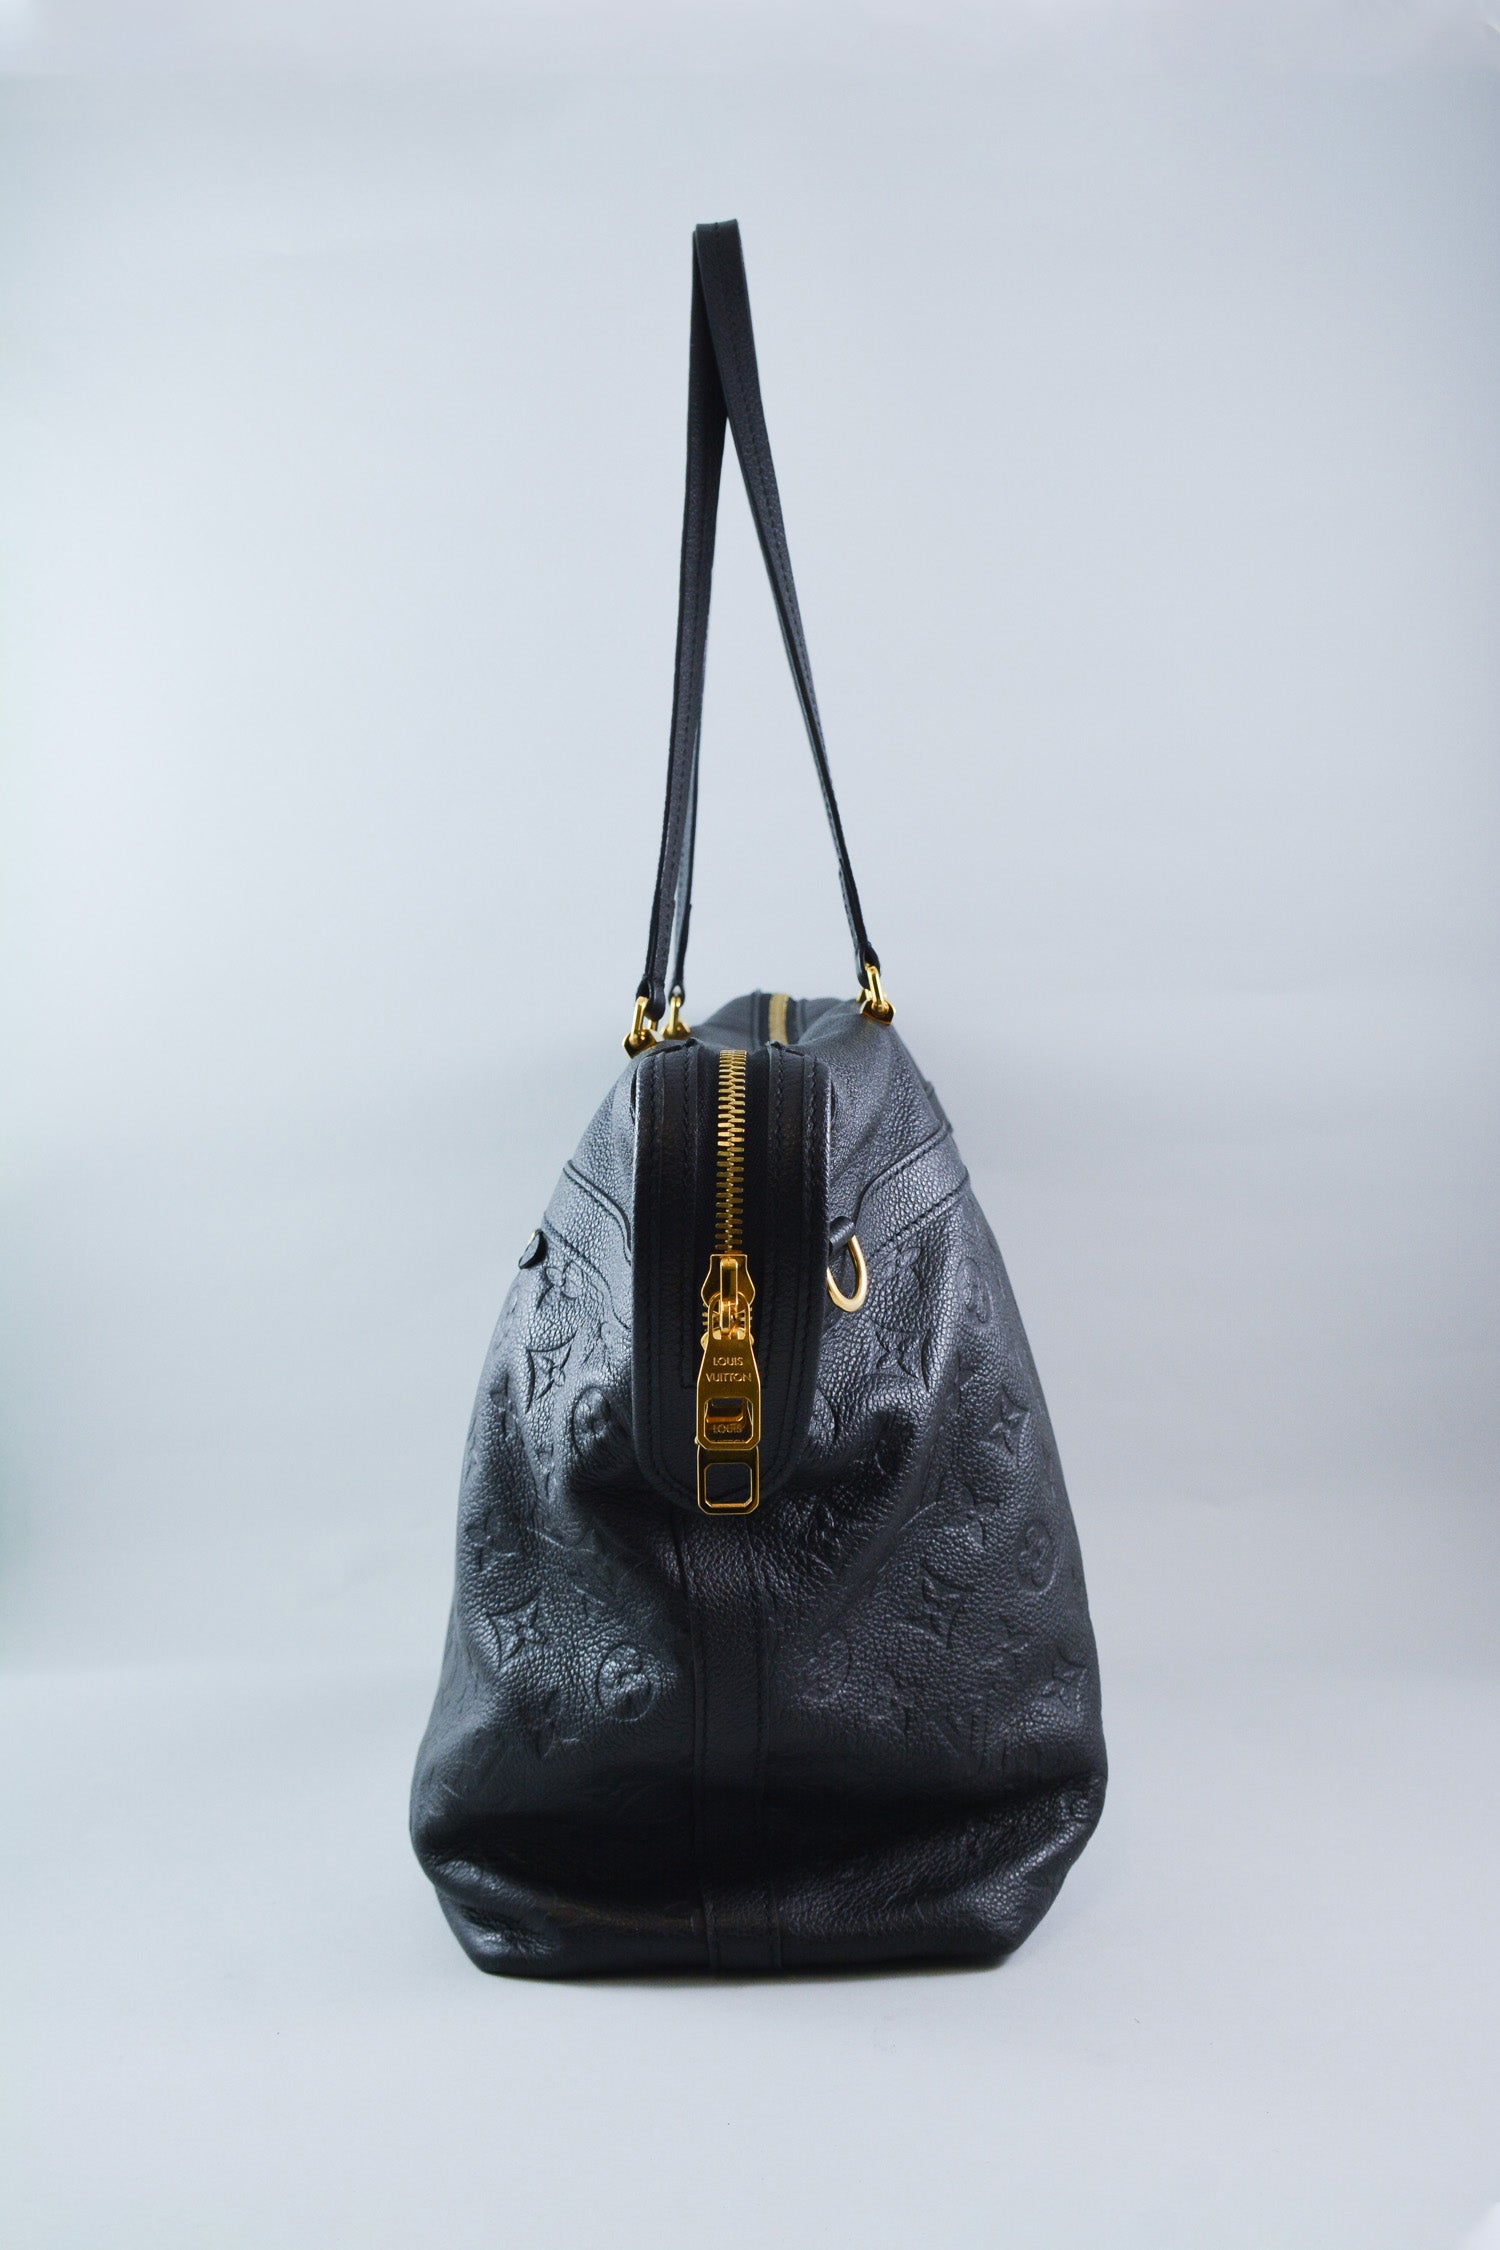 Louis Vuitton Black Leather Monogram Empreinte Inspiree Bag